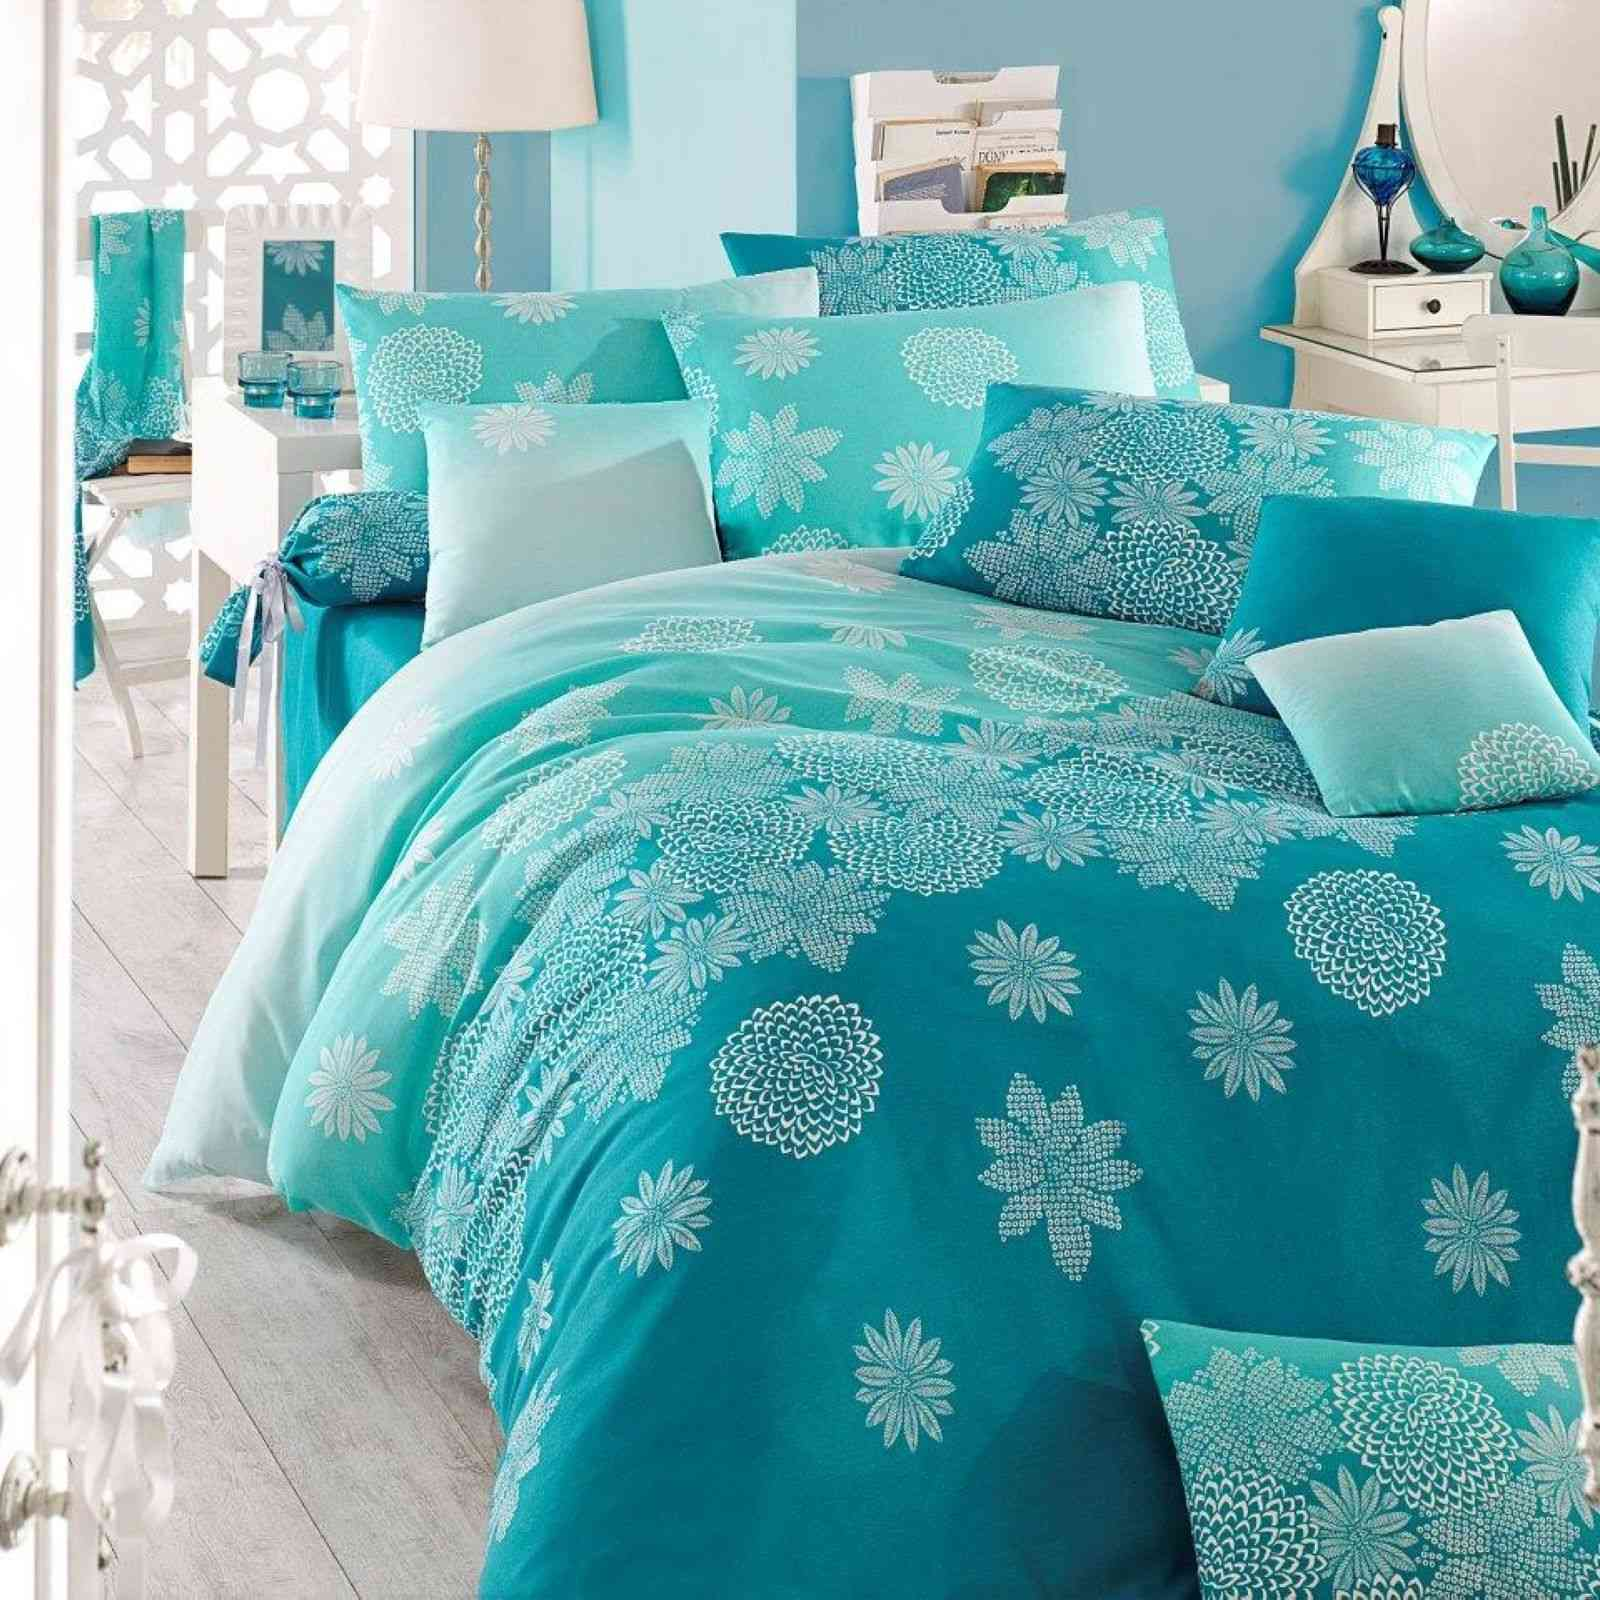 eponj home simay turquoise brandalley. Black Bedroom Furniture Sets. Home Design Ideas